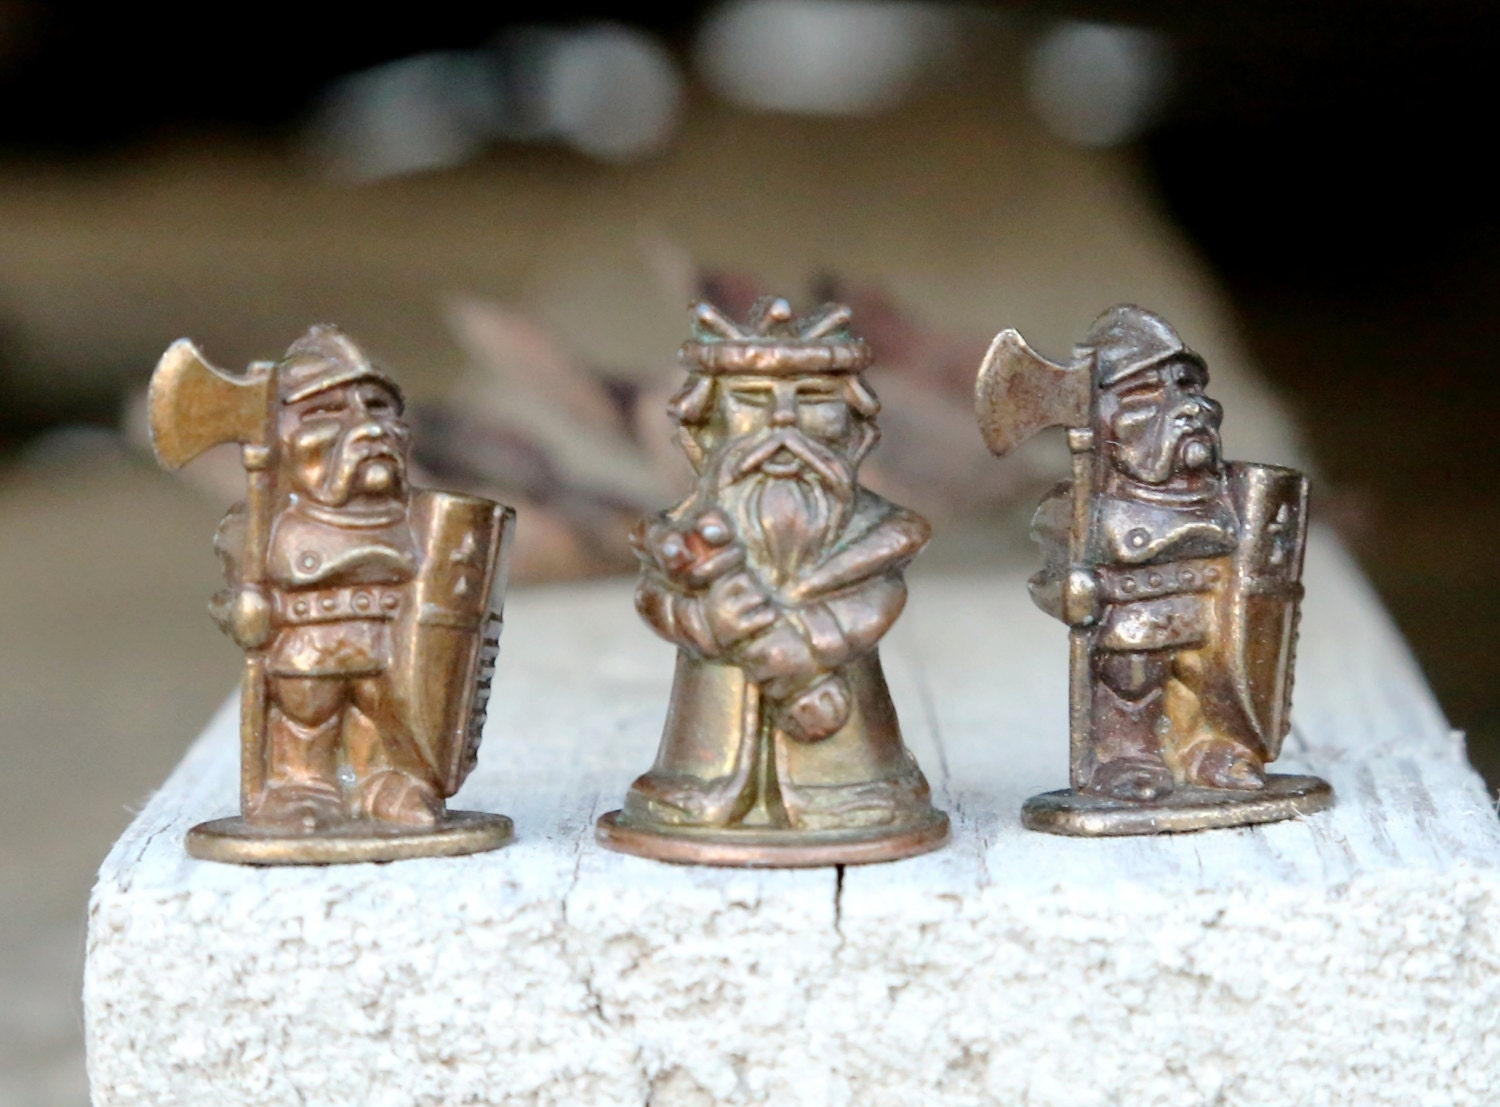 Retro chess chess pieces chess set antique chess vintage chess - Collectible chess sets ...